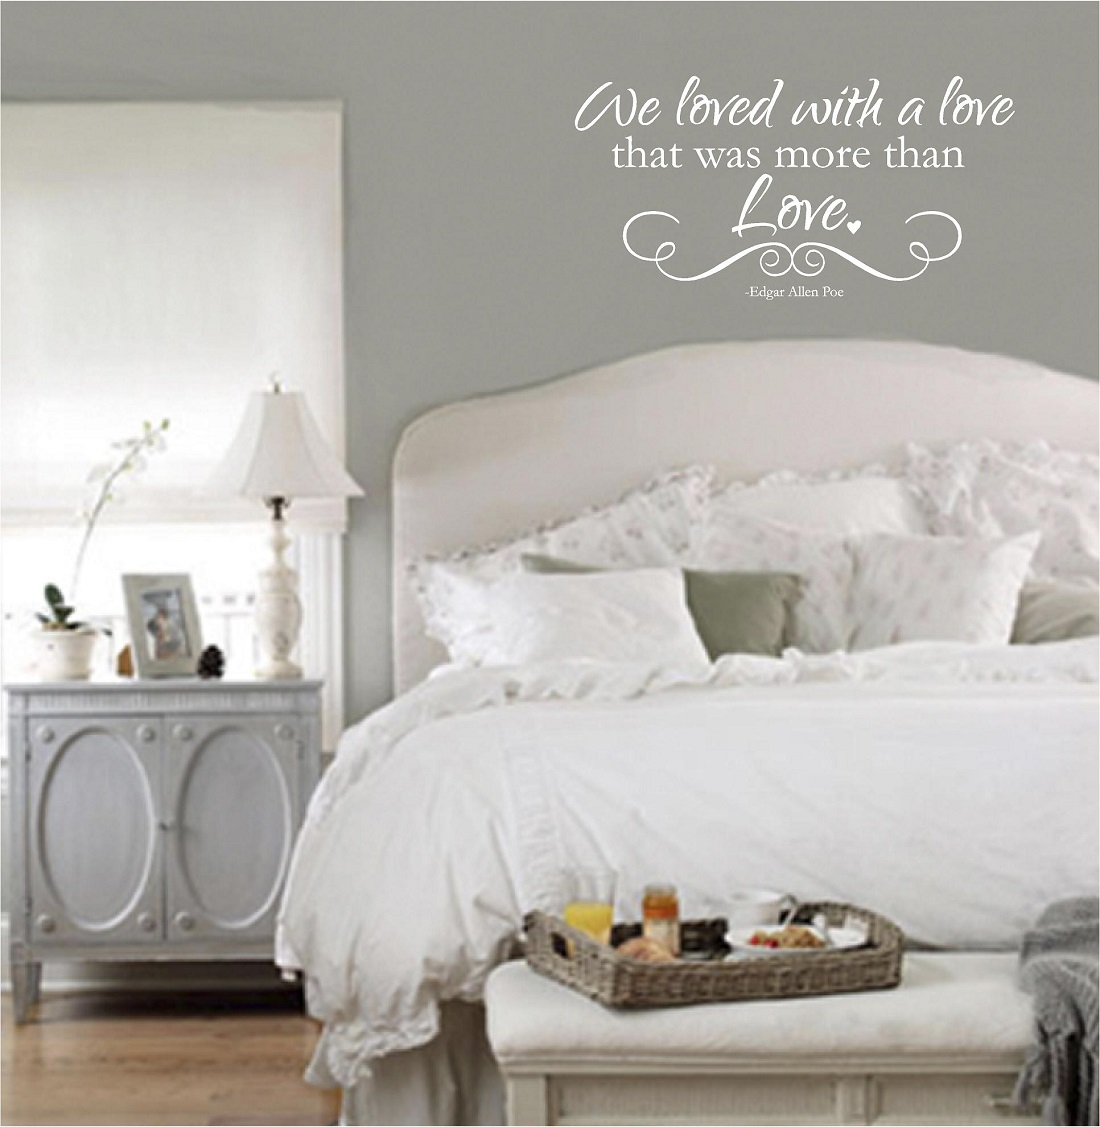 Bedroom Wall Quotes Bedroom Wall Quotes | Vinyl Wall Decals, We Loved Bedroom Wall Quotes